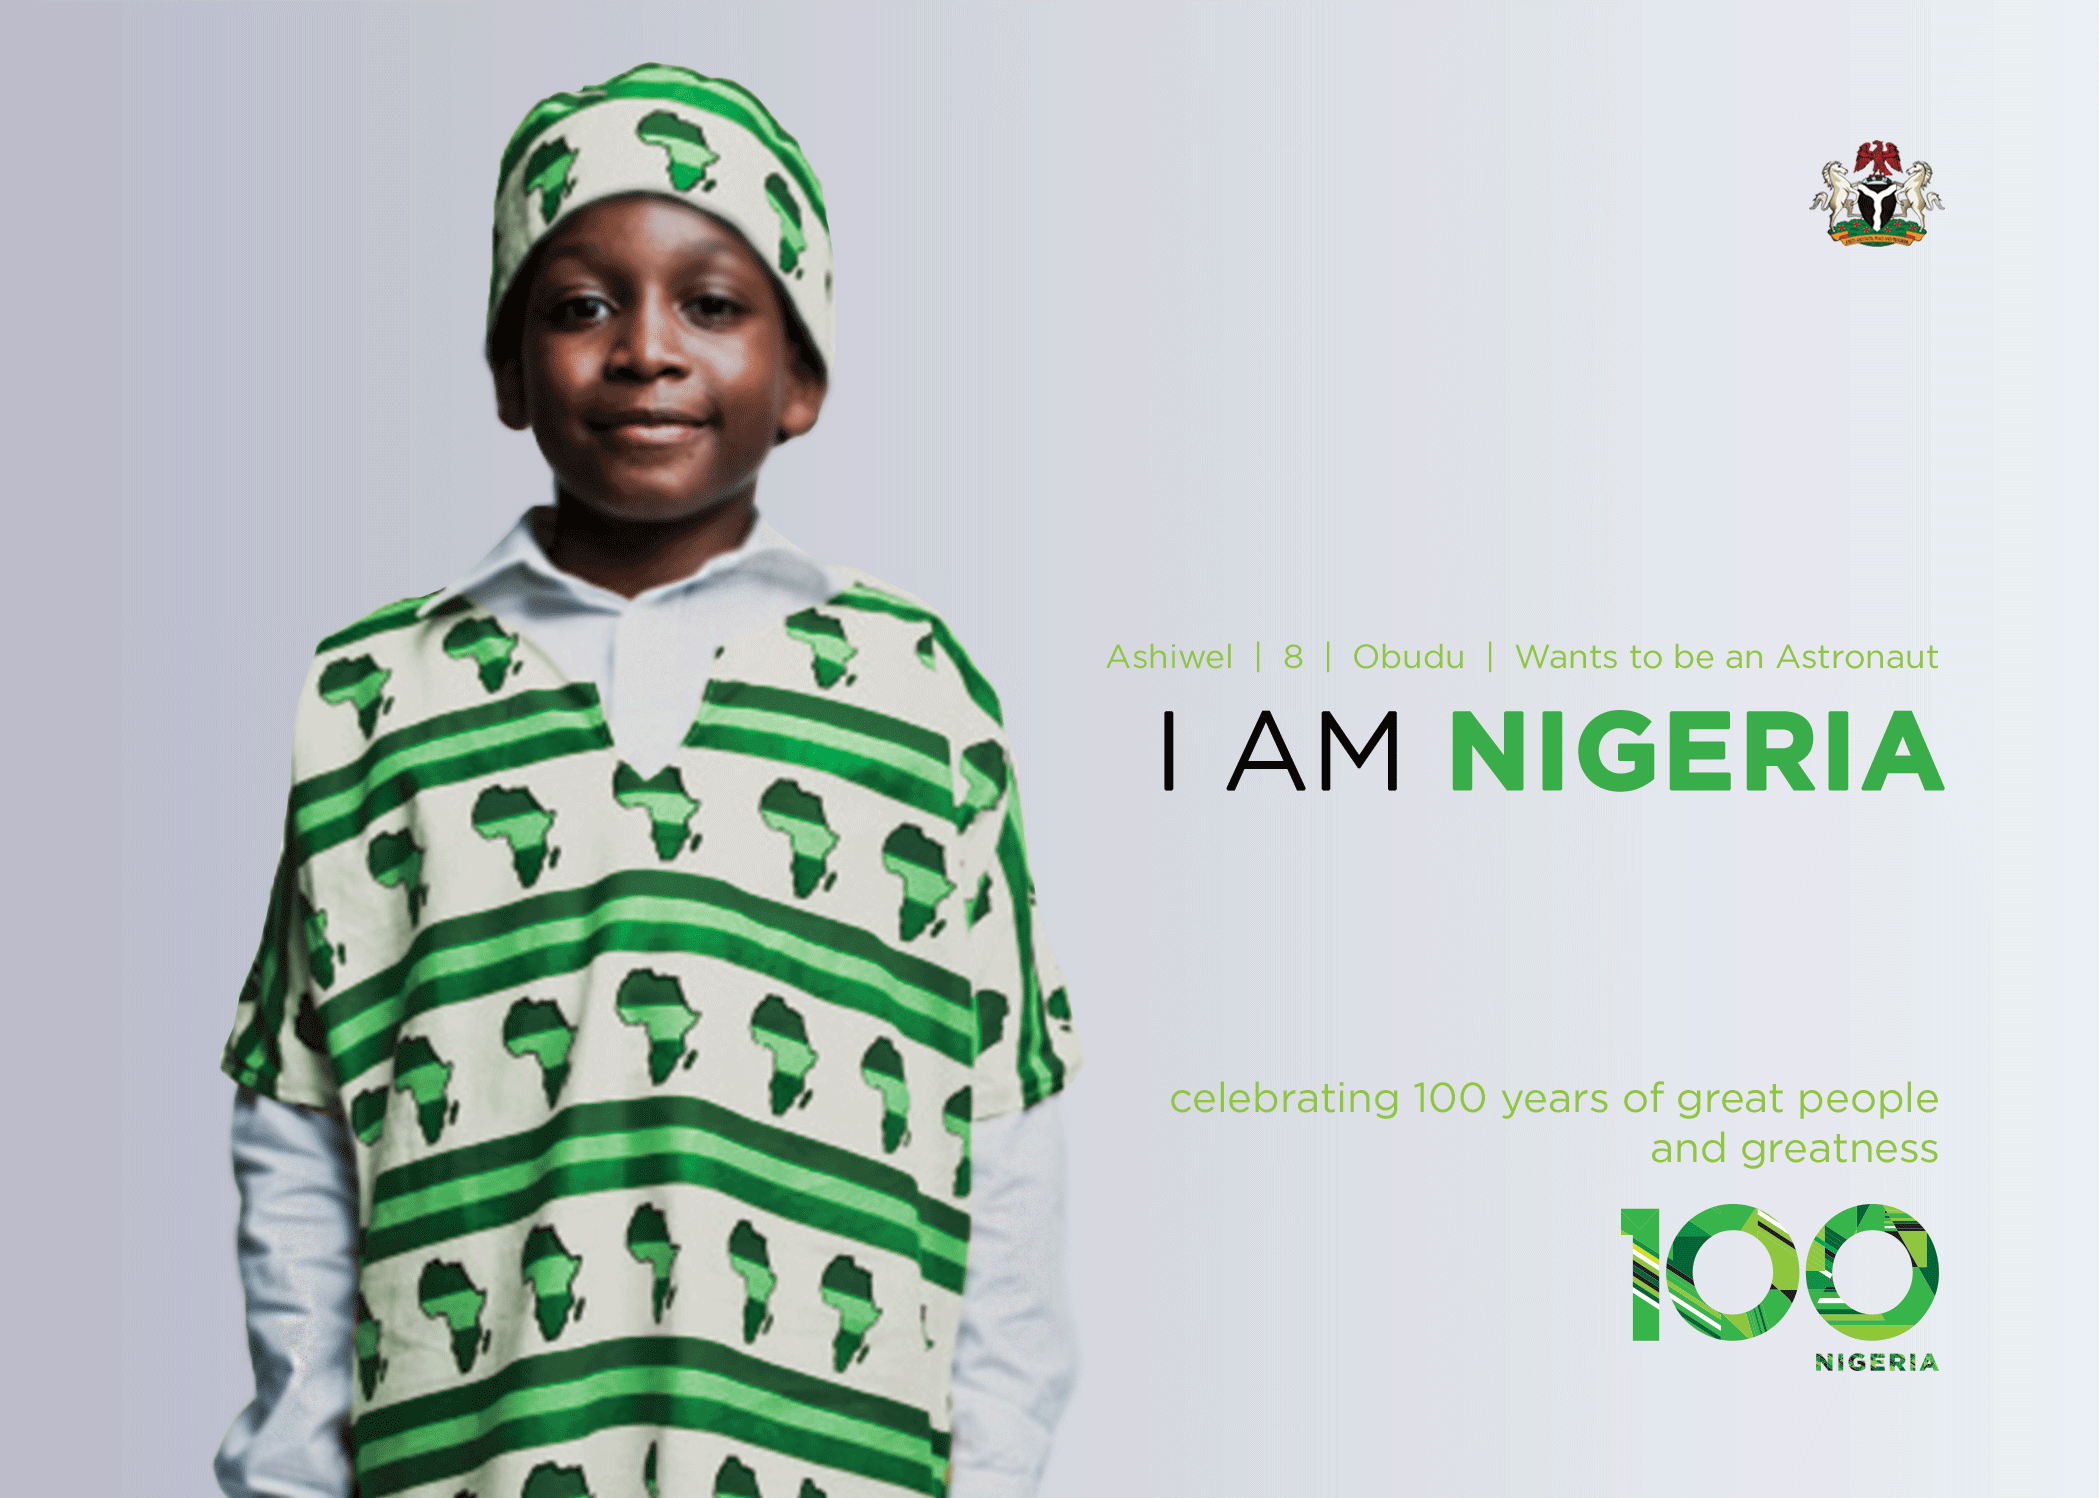 Ashiwel I am Nigeria at 100